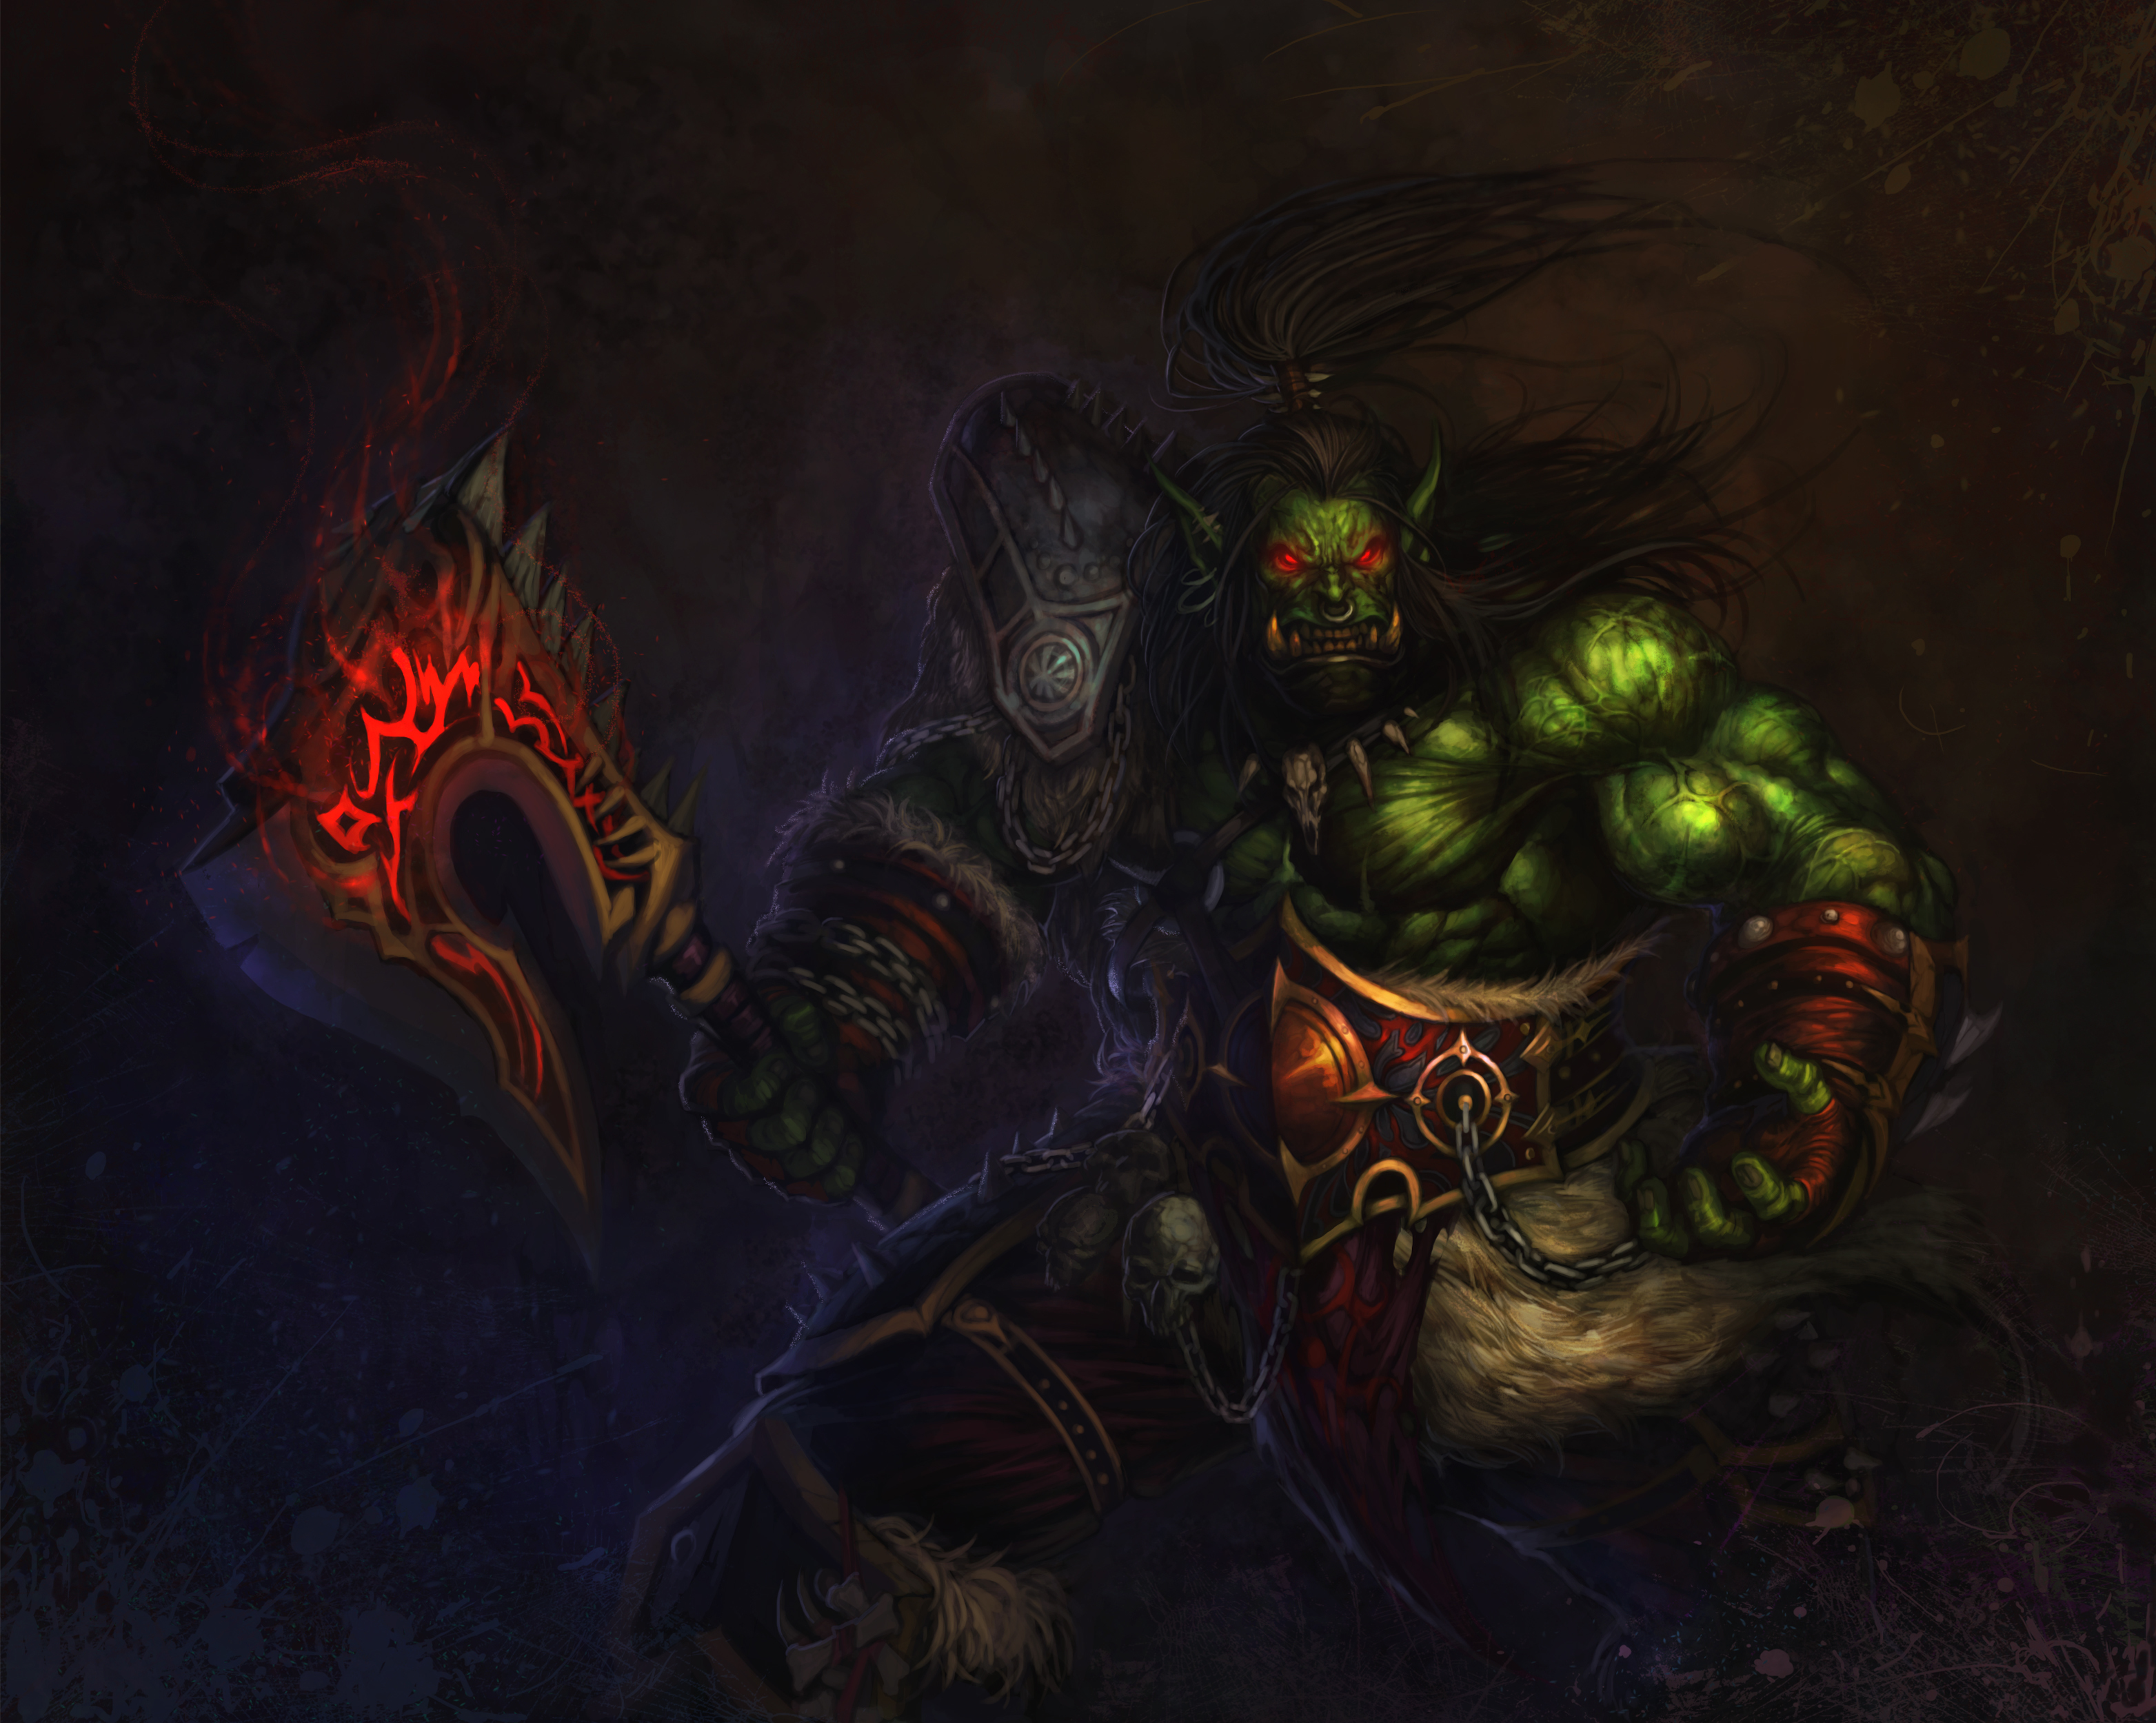 World of WarCraft WoW Orc Warrior Games Fantasy wallpaper 3127x2499 3127x2499